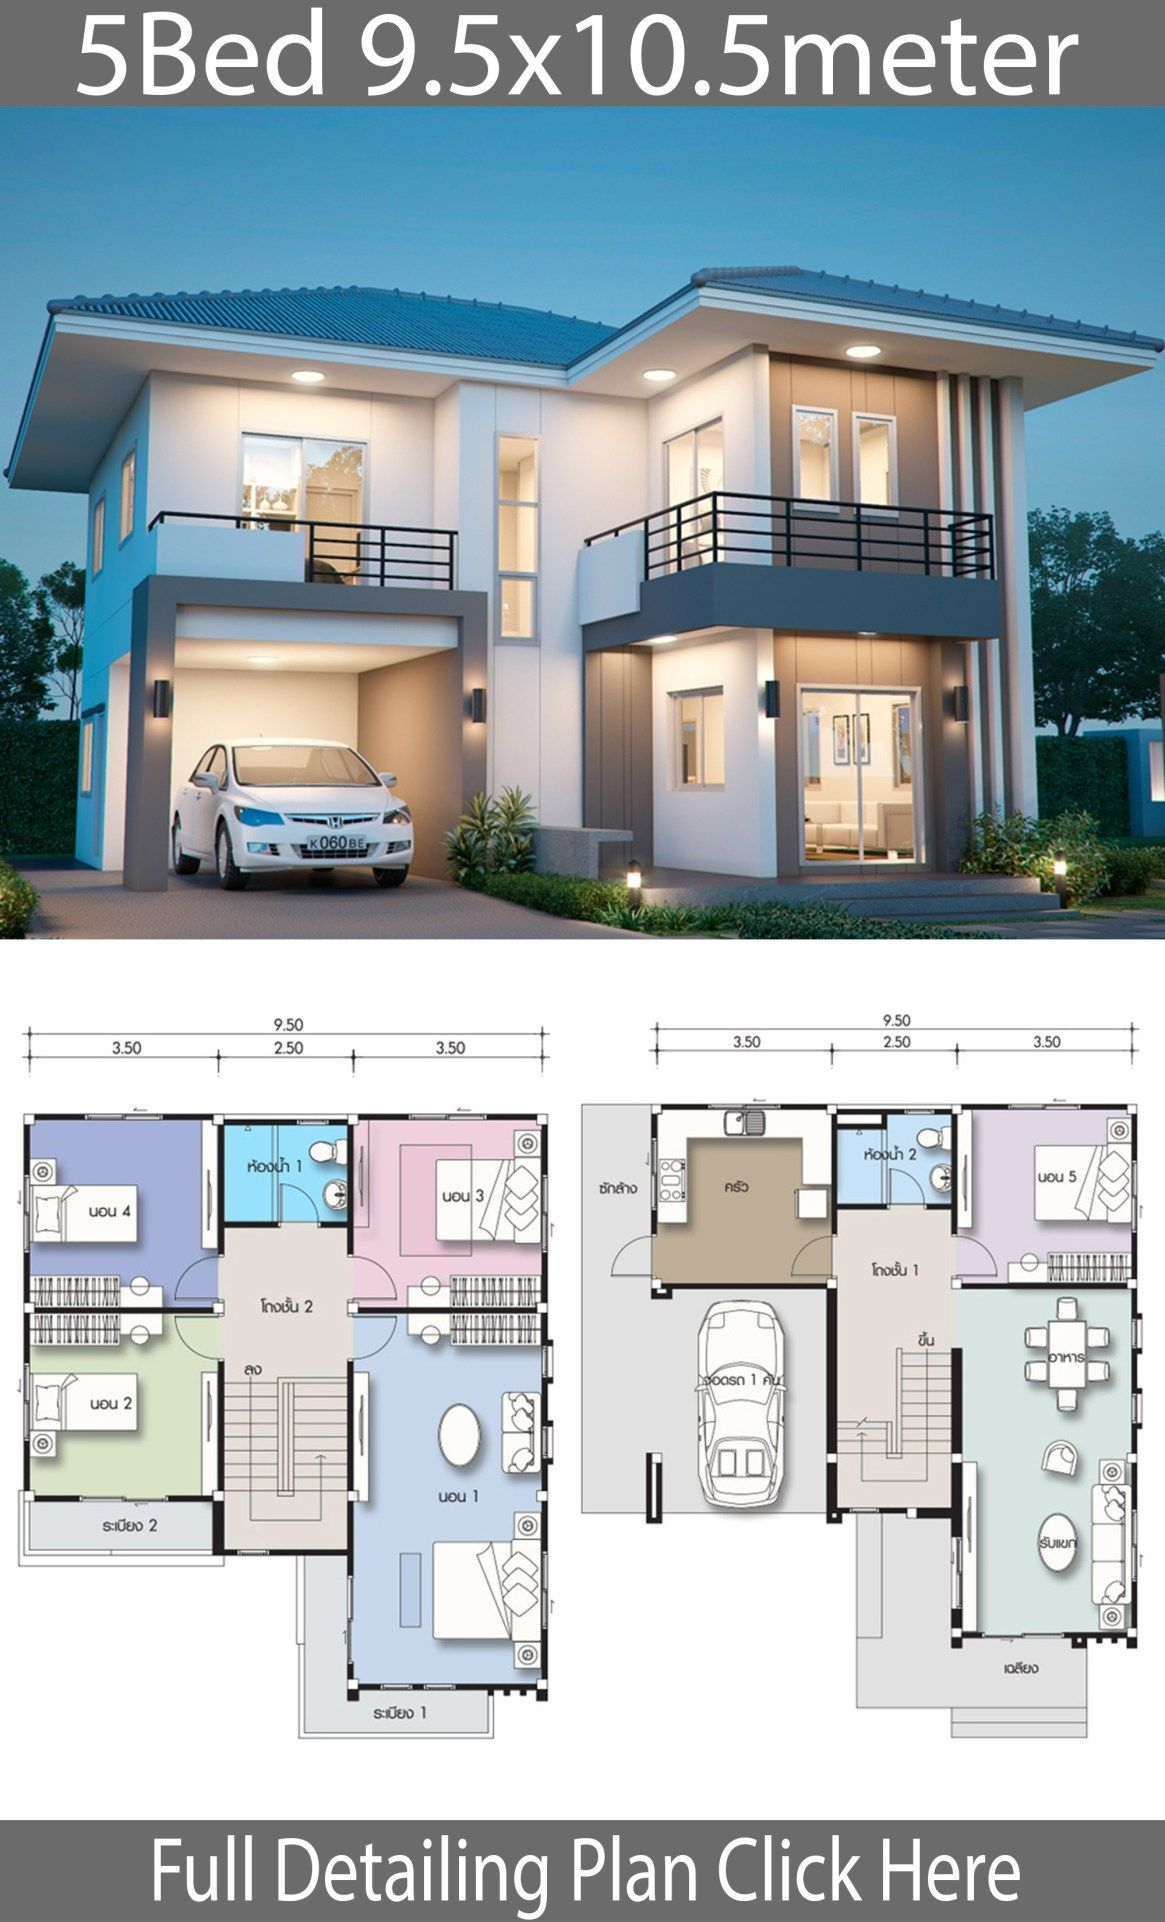 5 Bedroom House Plans